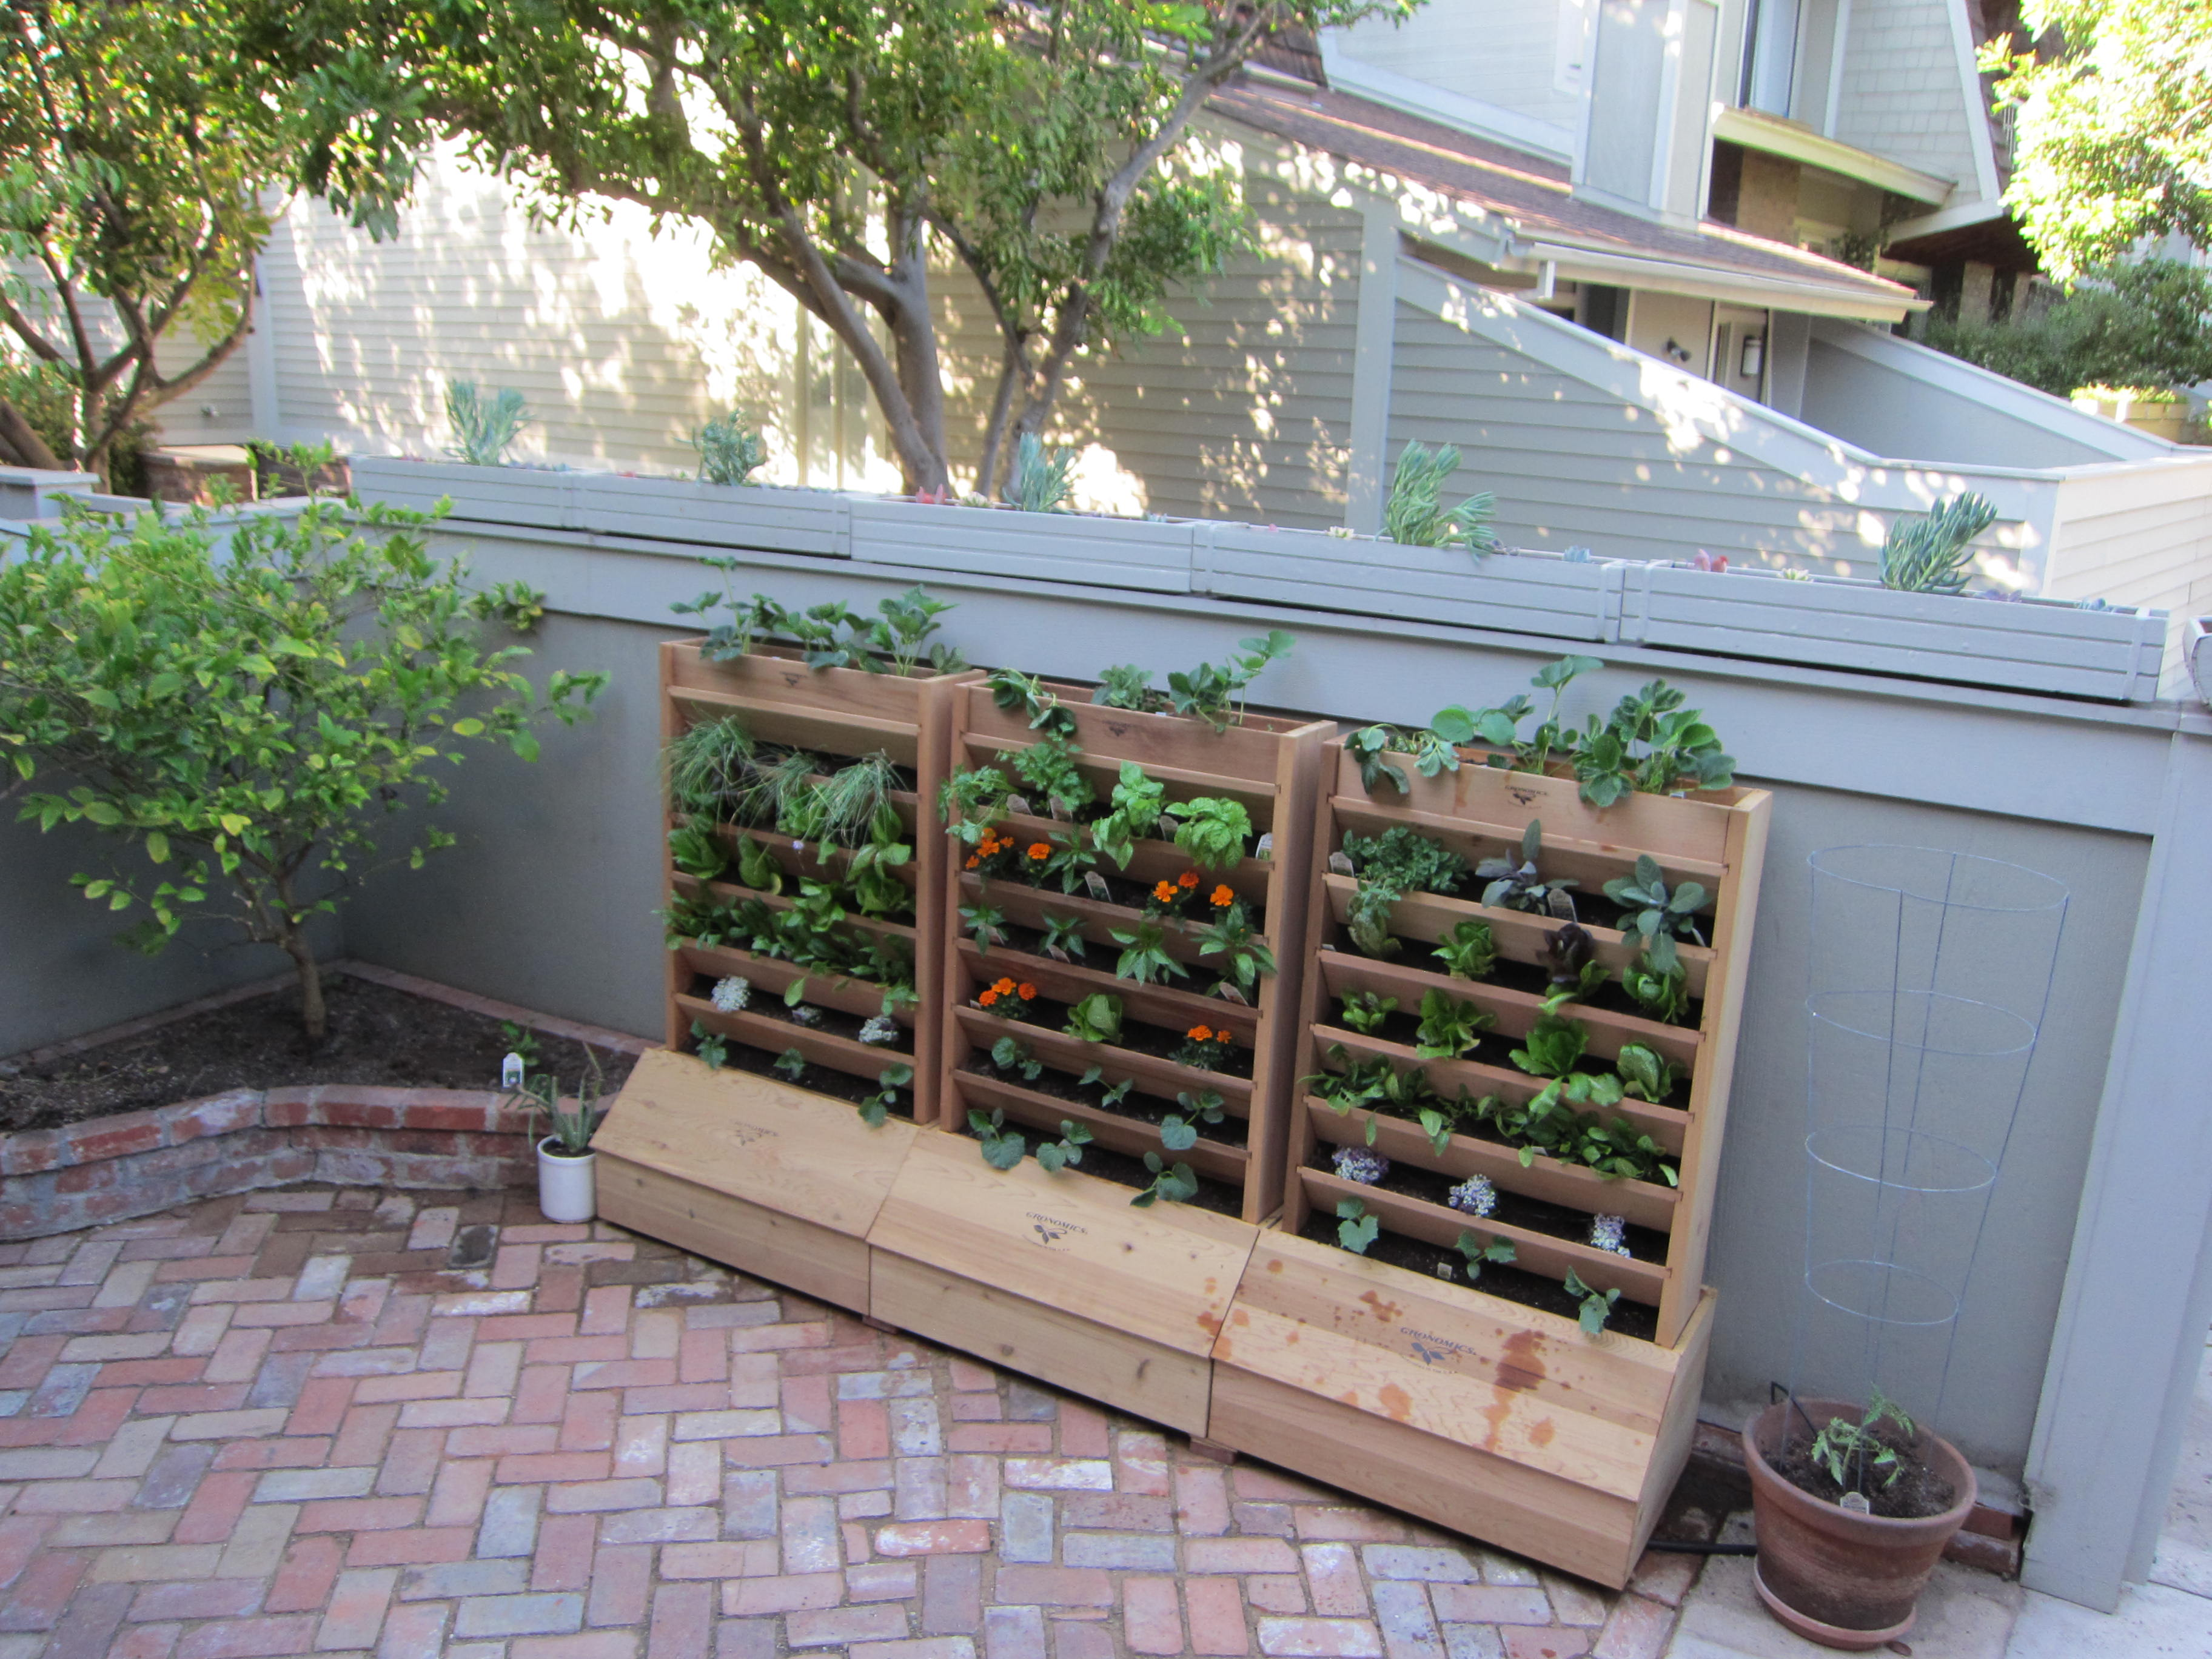 The vertical garden is planted with spring and summer crops.